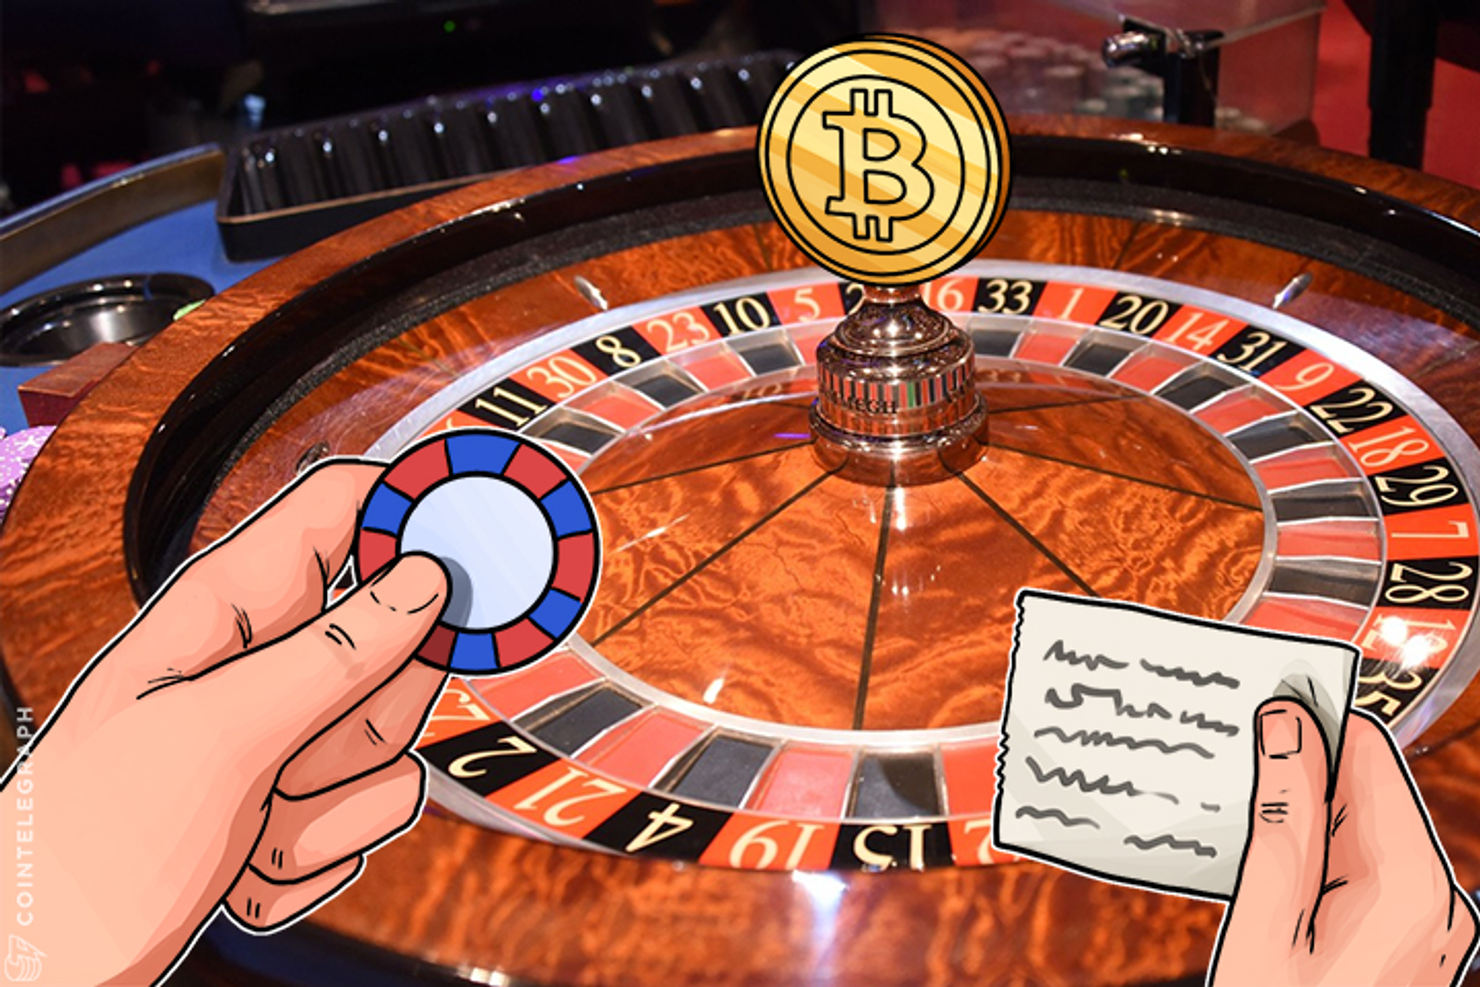 Curious facts you should know about Bitcoin casinos